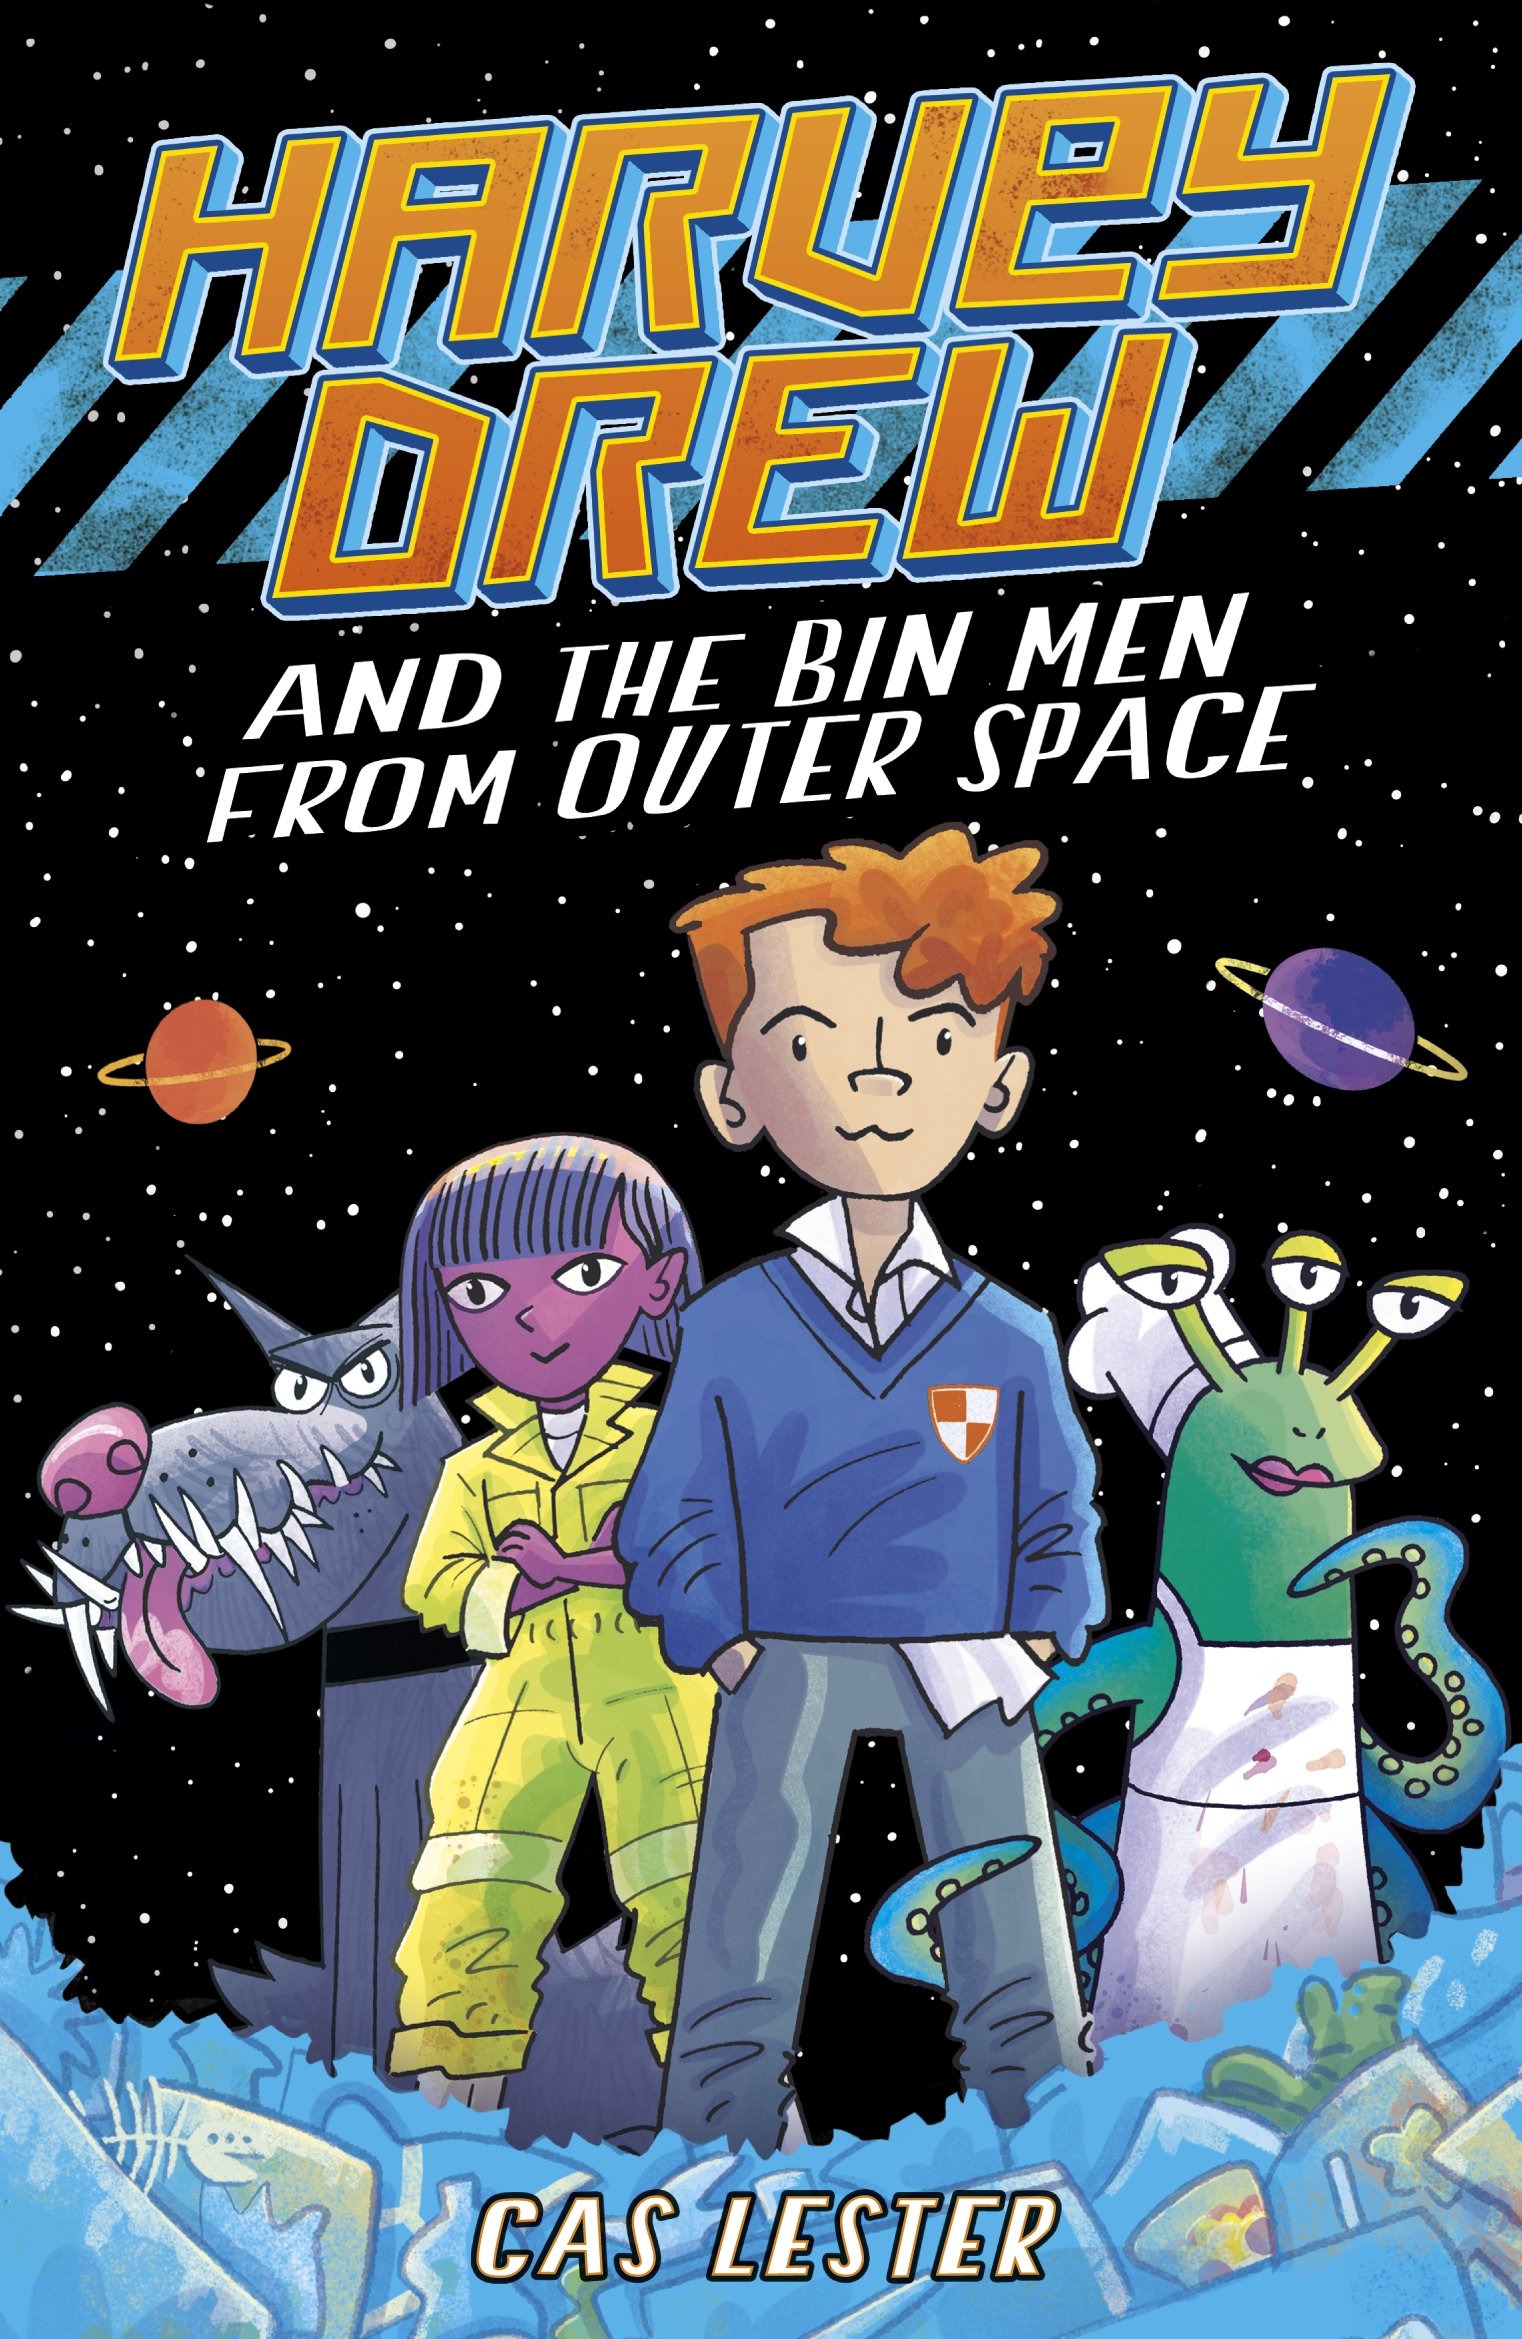 Harvey Drew and the Bin Men From Outer Space by Cas Lester